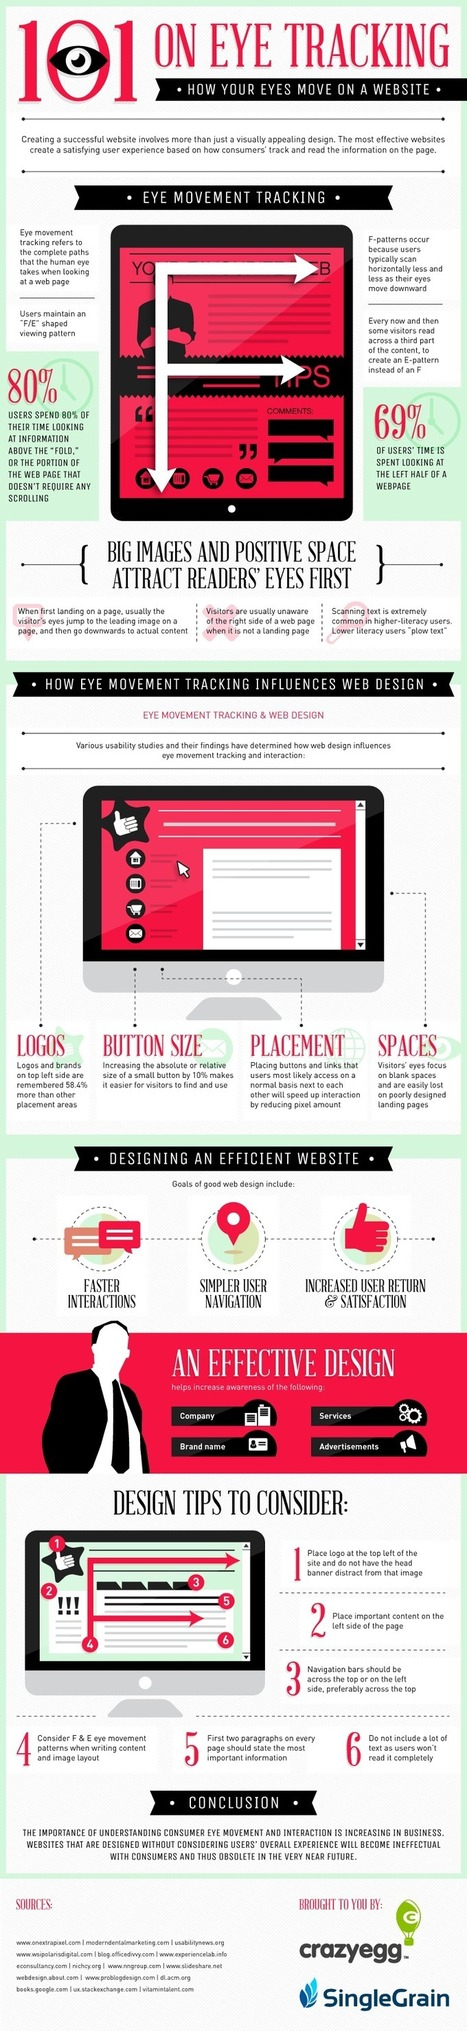 Eye Tracking 101: How Your Eyes Move on a Website | social media infographics and typography | Scoop.it